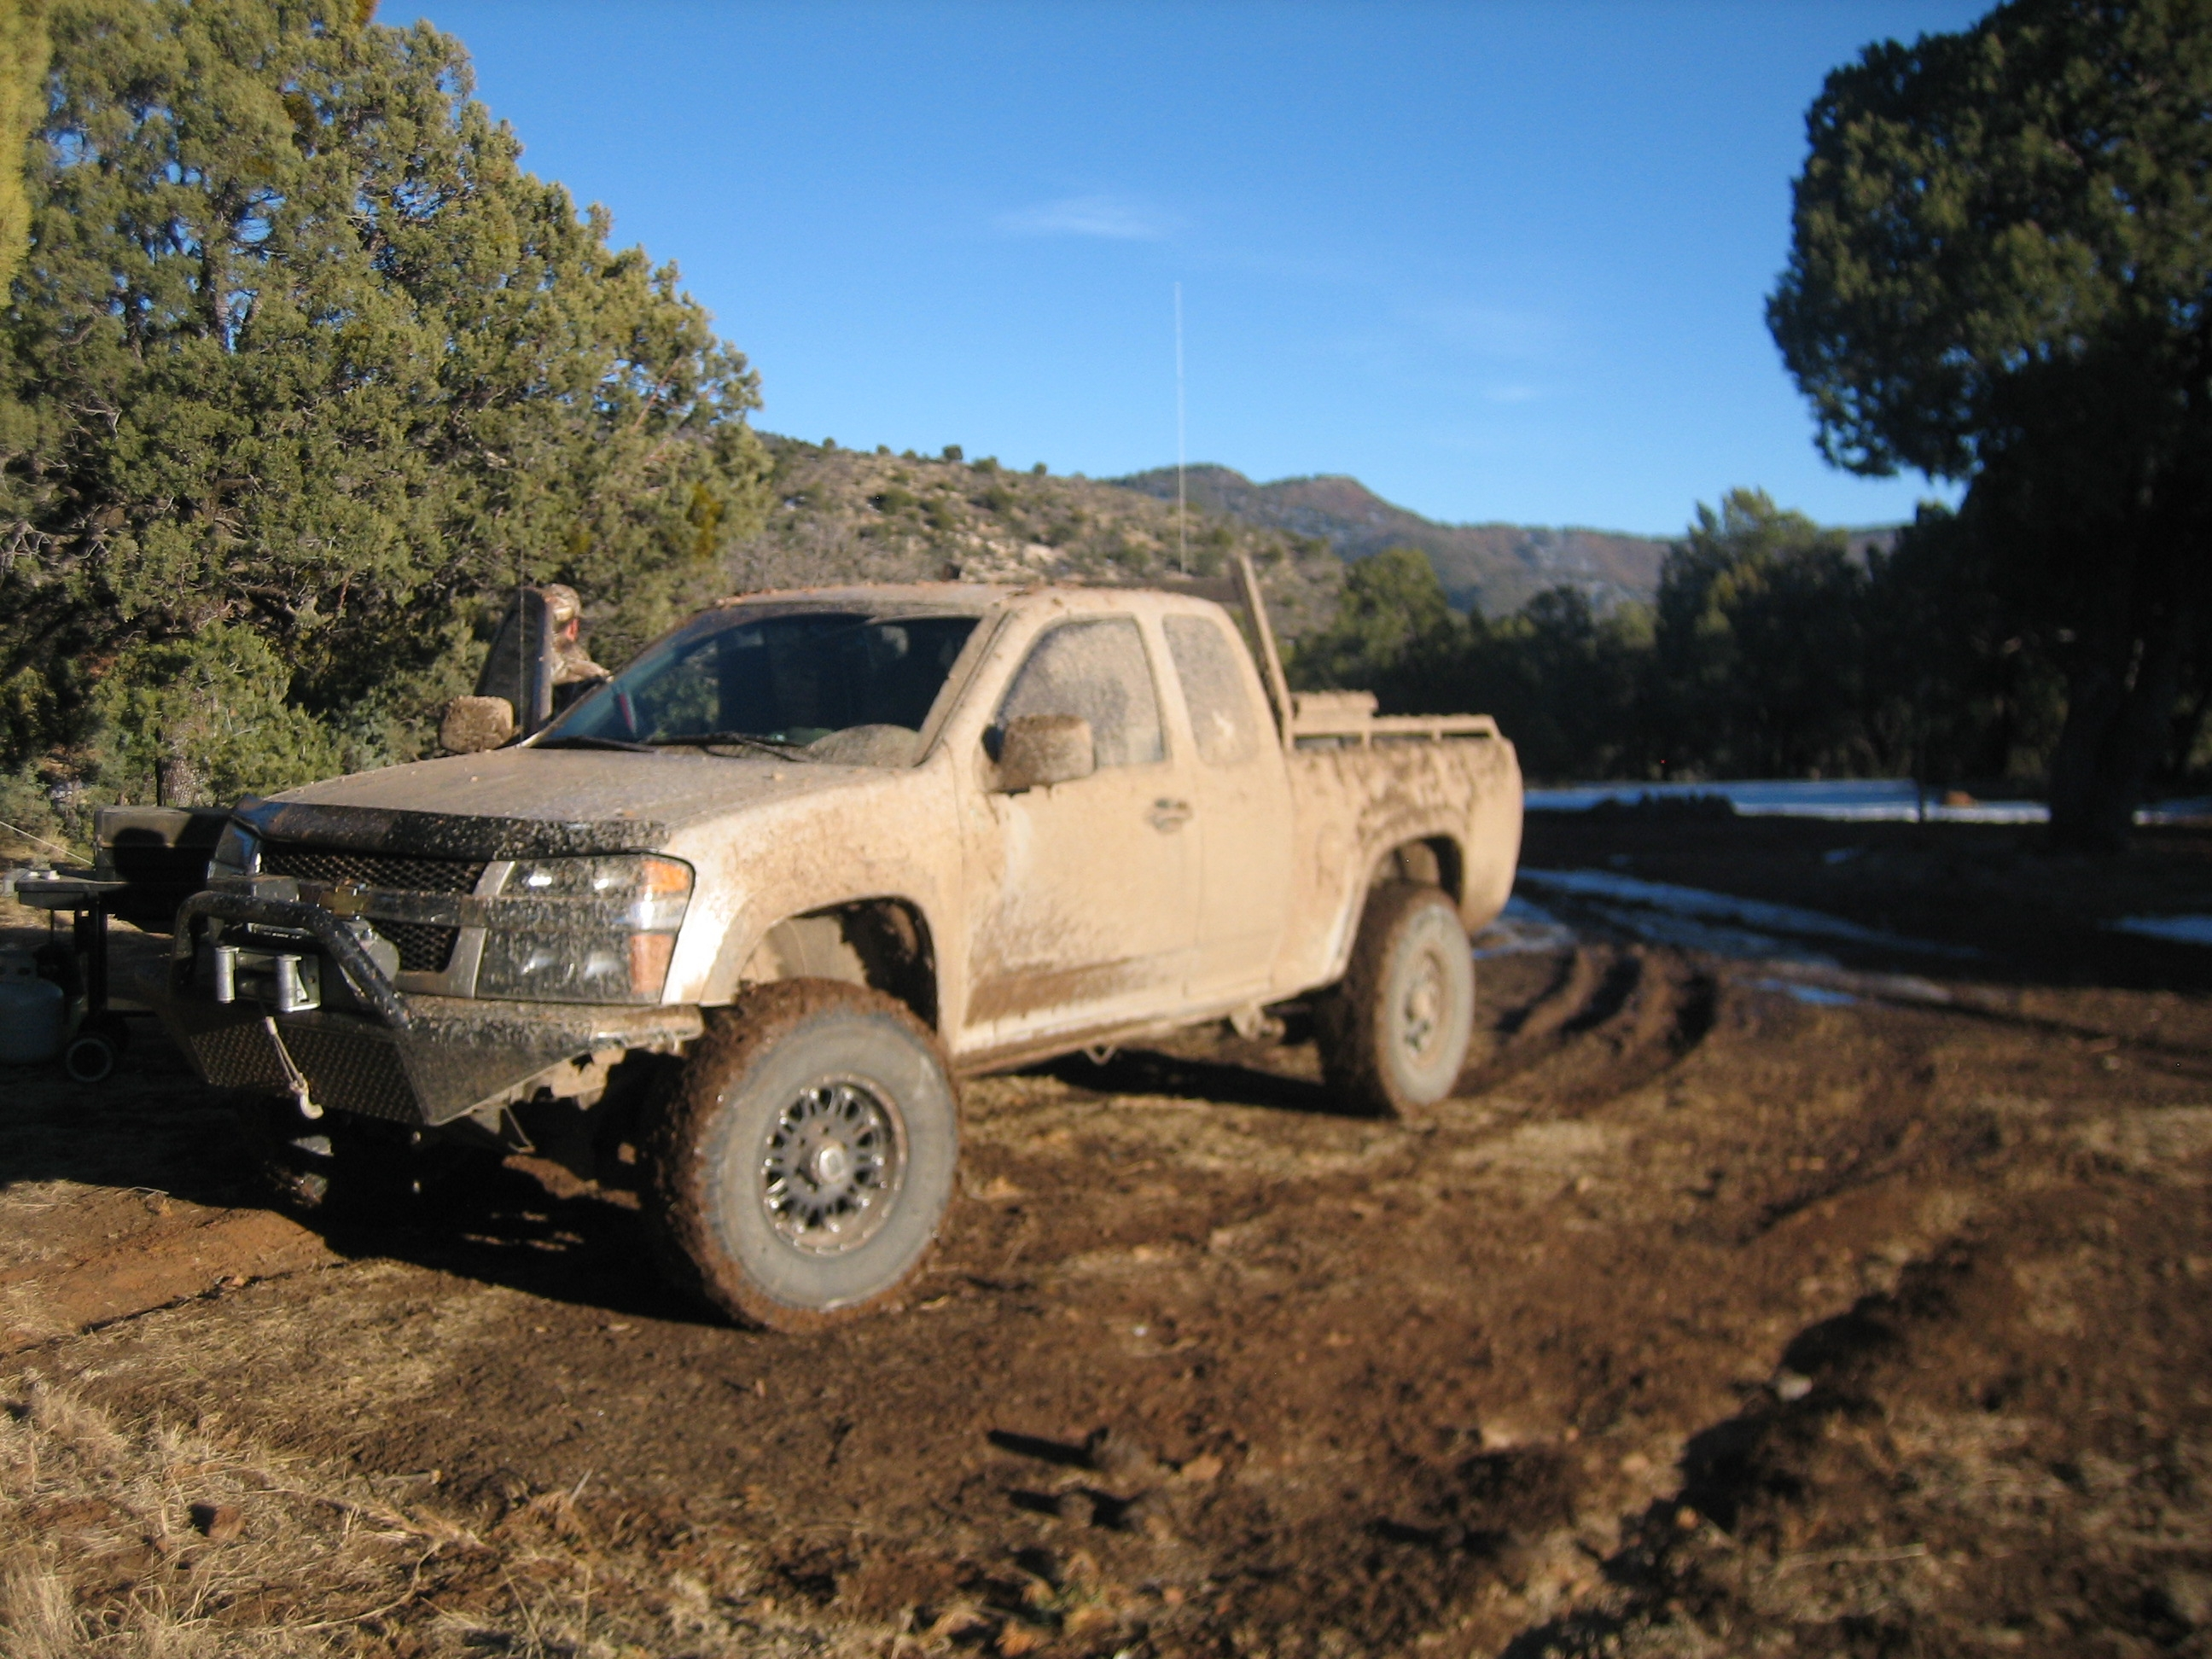 K_RADO's 2005 Chevrolet Colorado Regular Cab